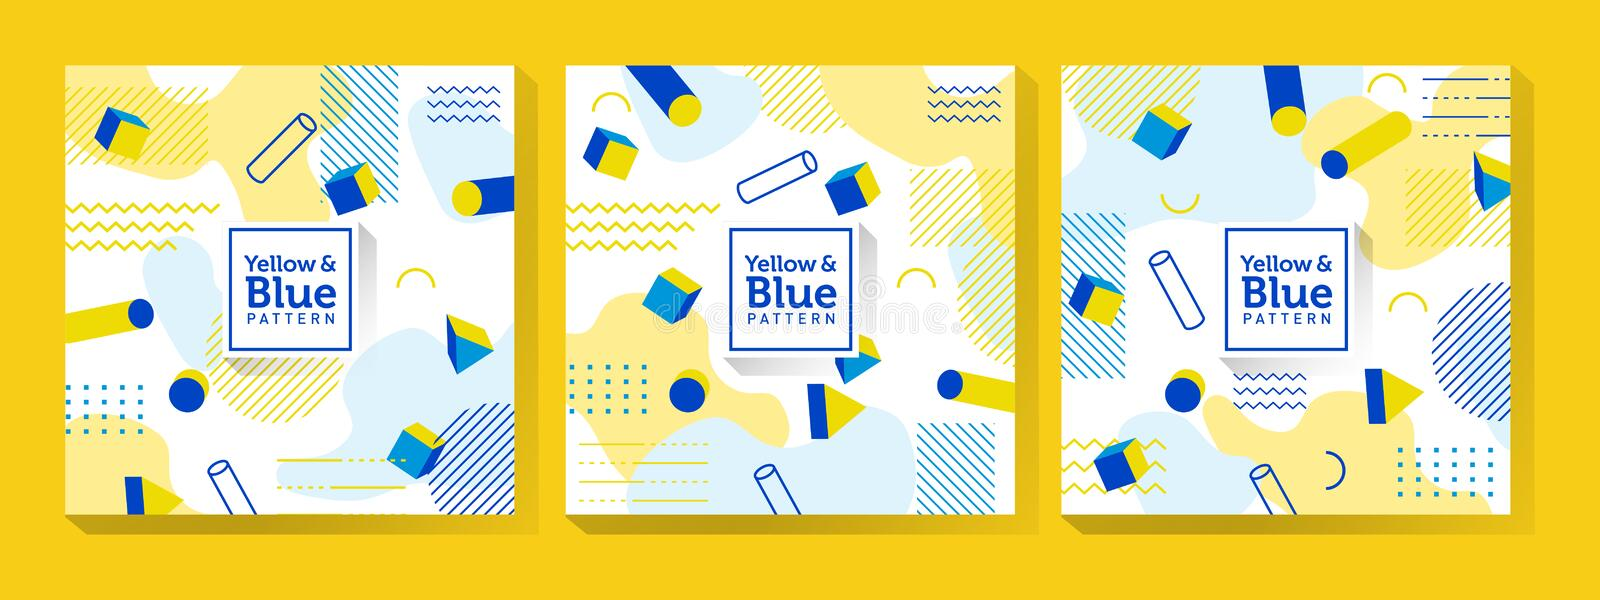 Blue and Yellow Memphis Art royalty free illustration